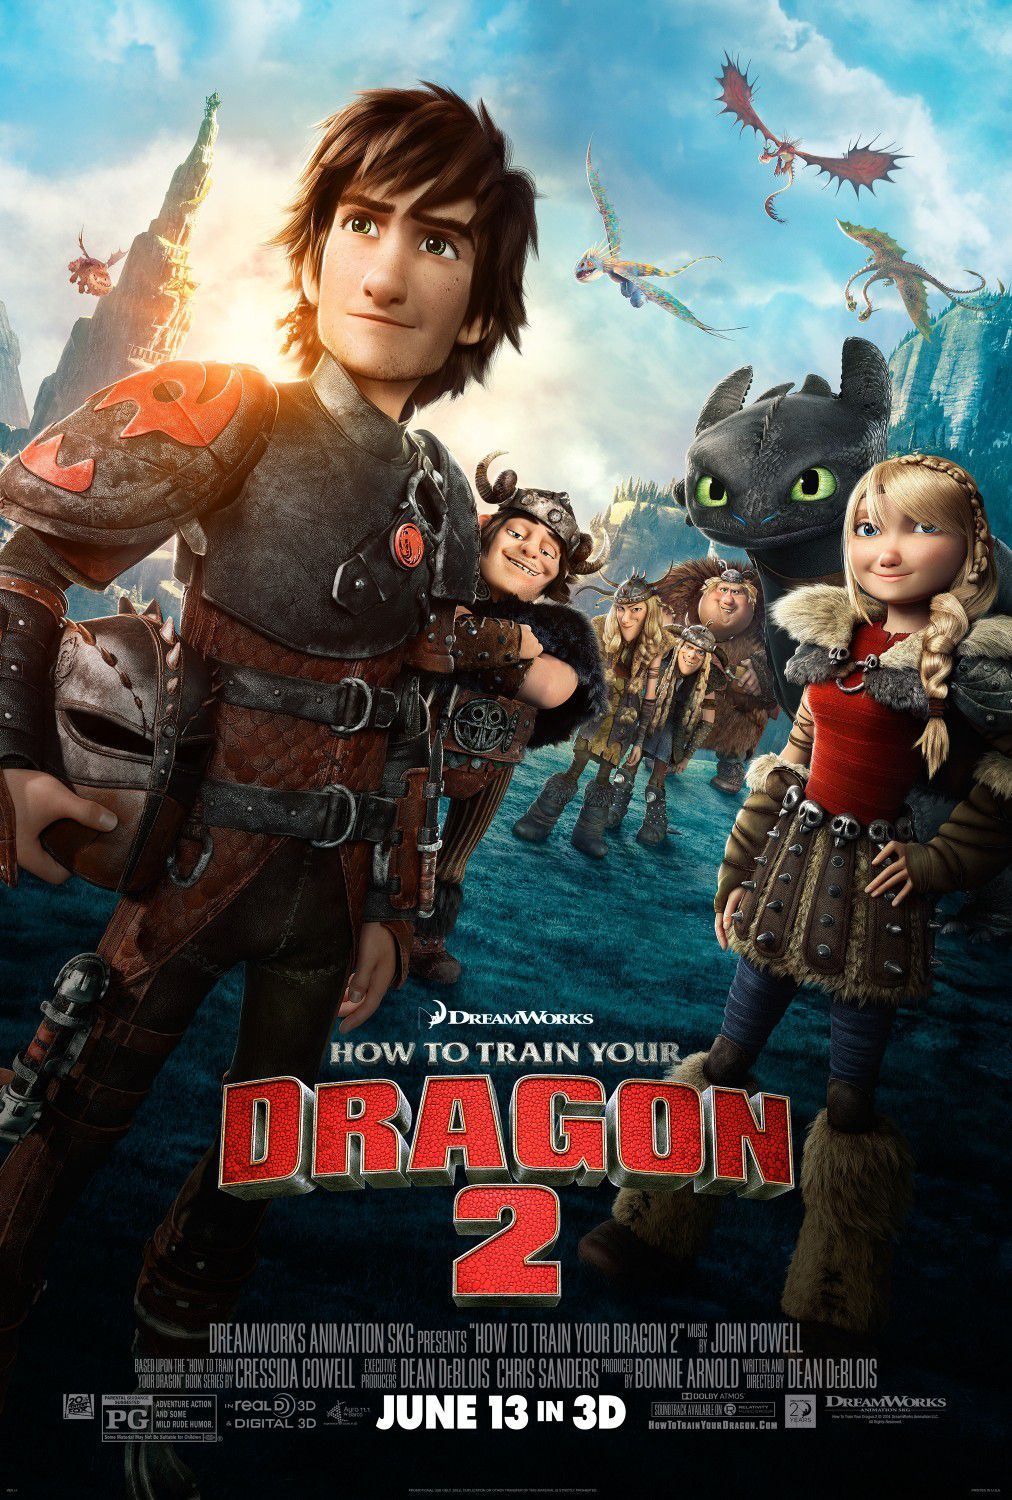 Dragon Trainer 2 - How to train your Dragon continue adventure - animated film poster